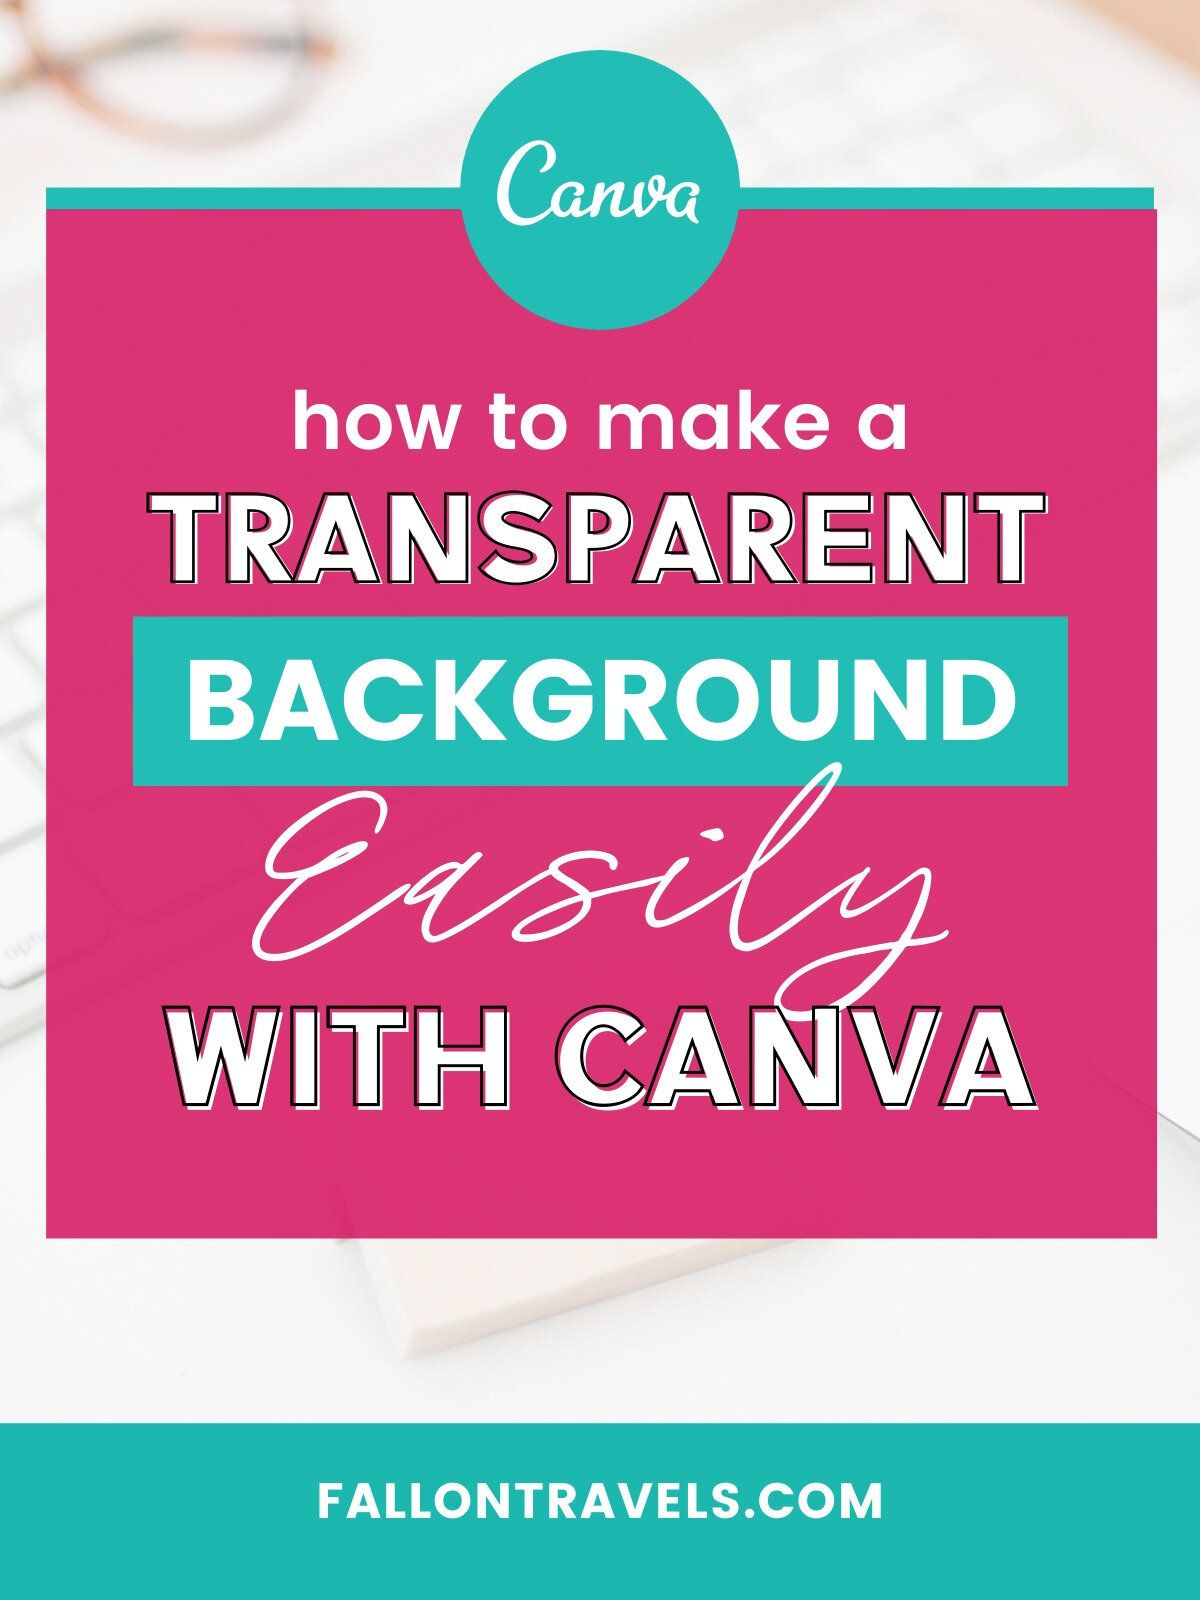 How Do You Make A Background Transparent In Canva ...